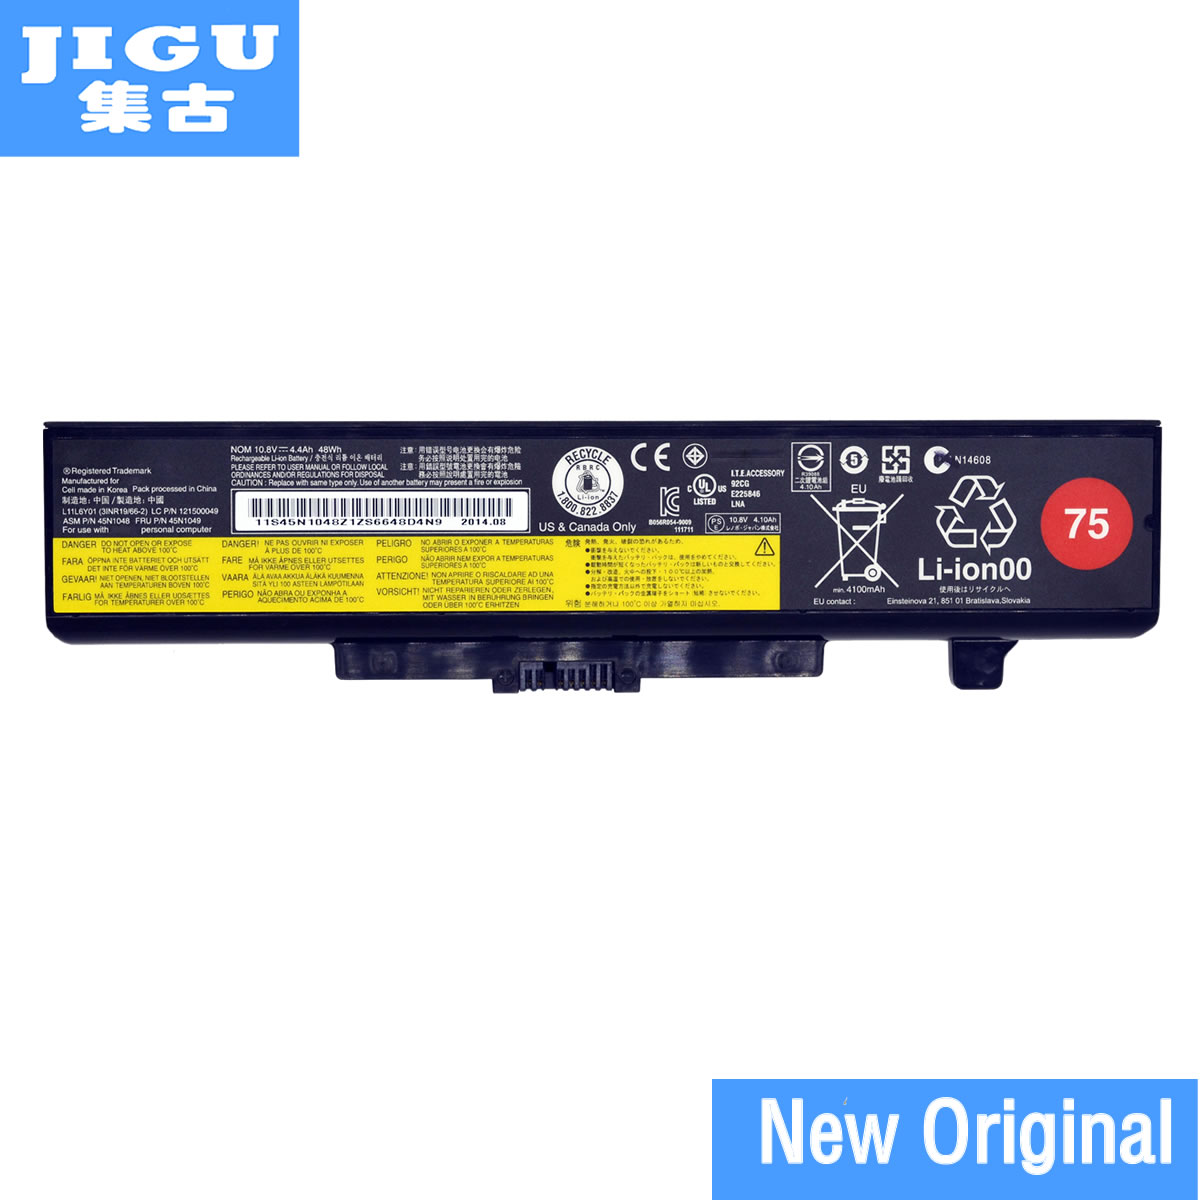 JIGU Original laptop Battery For Lenovo V580 V580C Y480 Y480P Y485 Y580 Y580A Z380 Z480 Z485 Z580 Z585 V480S V480u jigu original laptop battery for lenovo v580 v580c y480 y480p y485 y580 y580a z380 z480 z485 z580 z585 v480s v480u